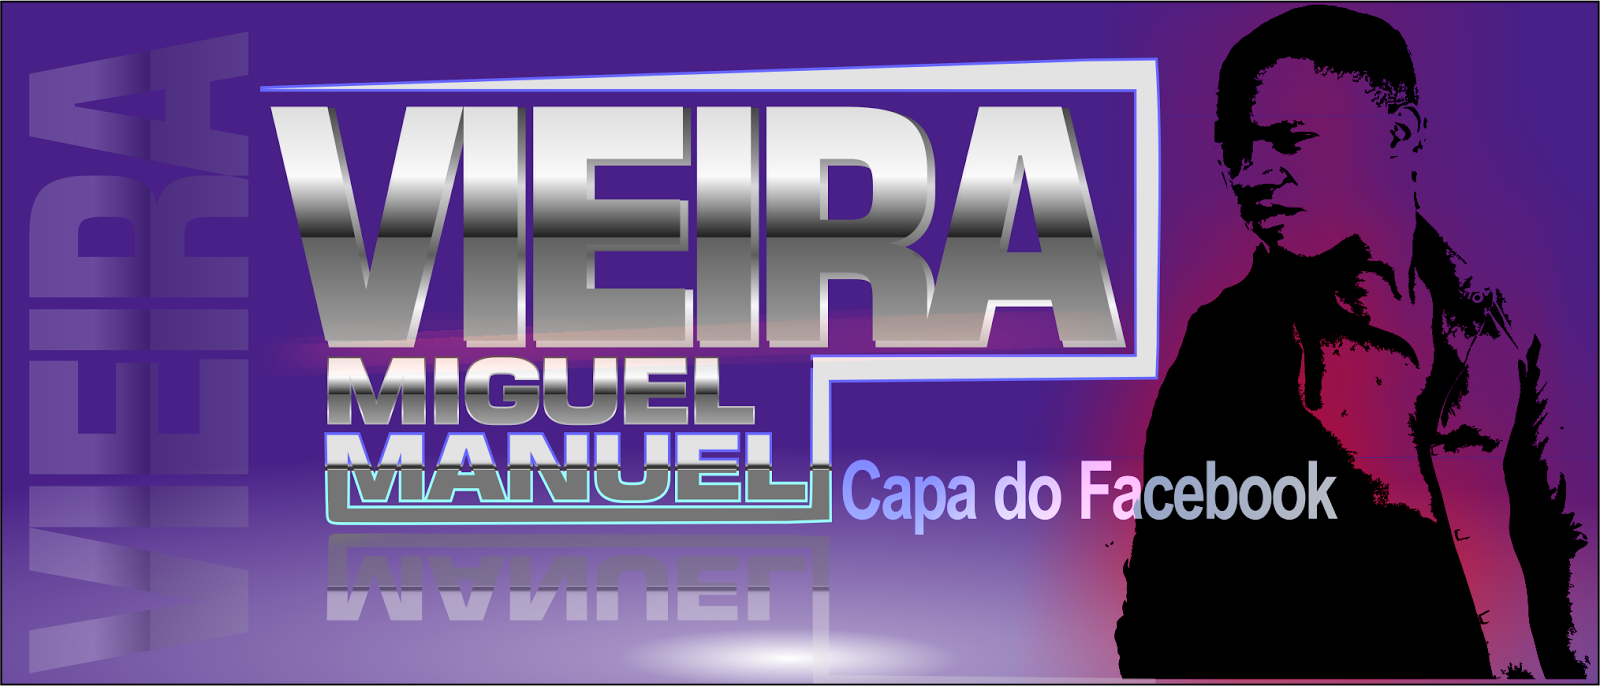 VIEIRA MIGUEL MANUEL - DESIGN - Capa do facebook